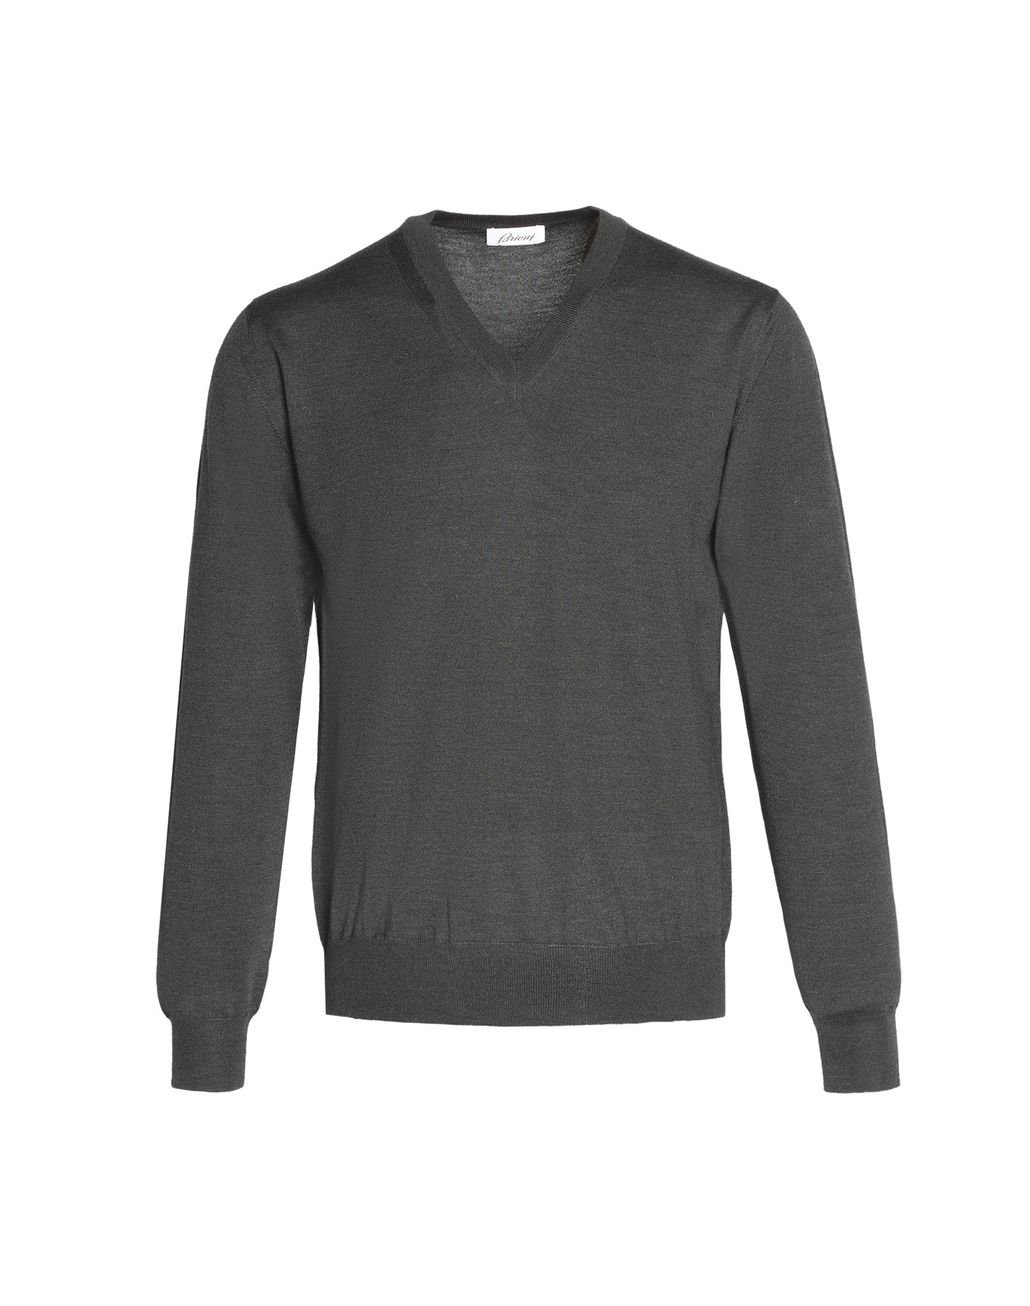 BRIONI Anthracite Grey V-Neck Sweater Knitwear Man f